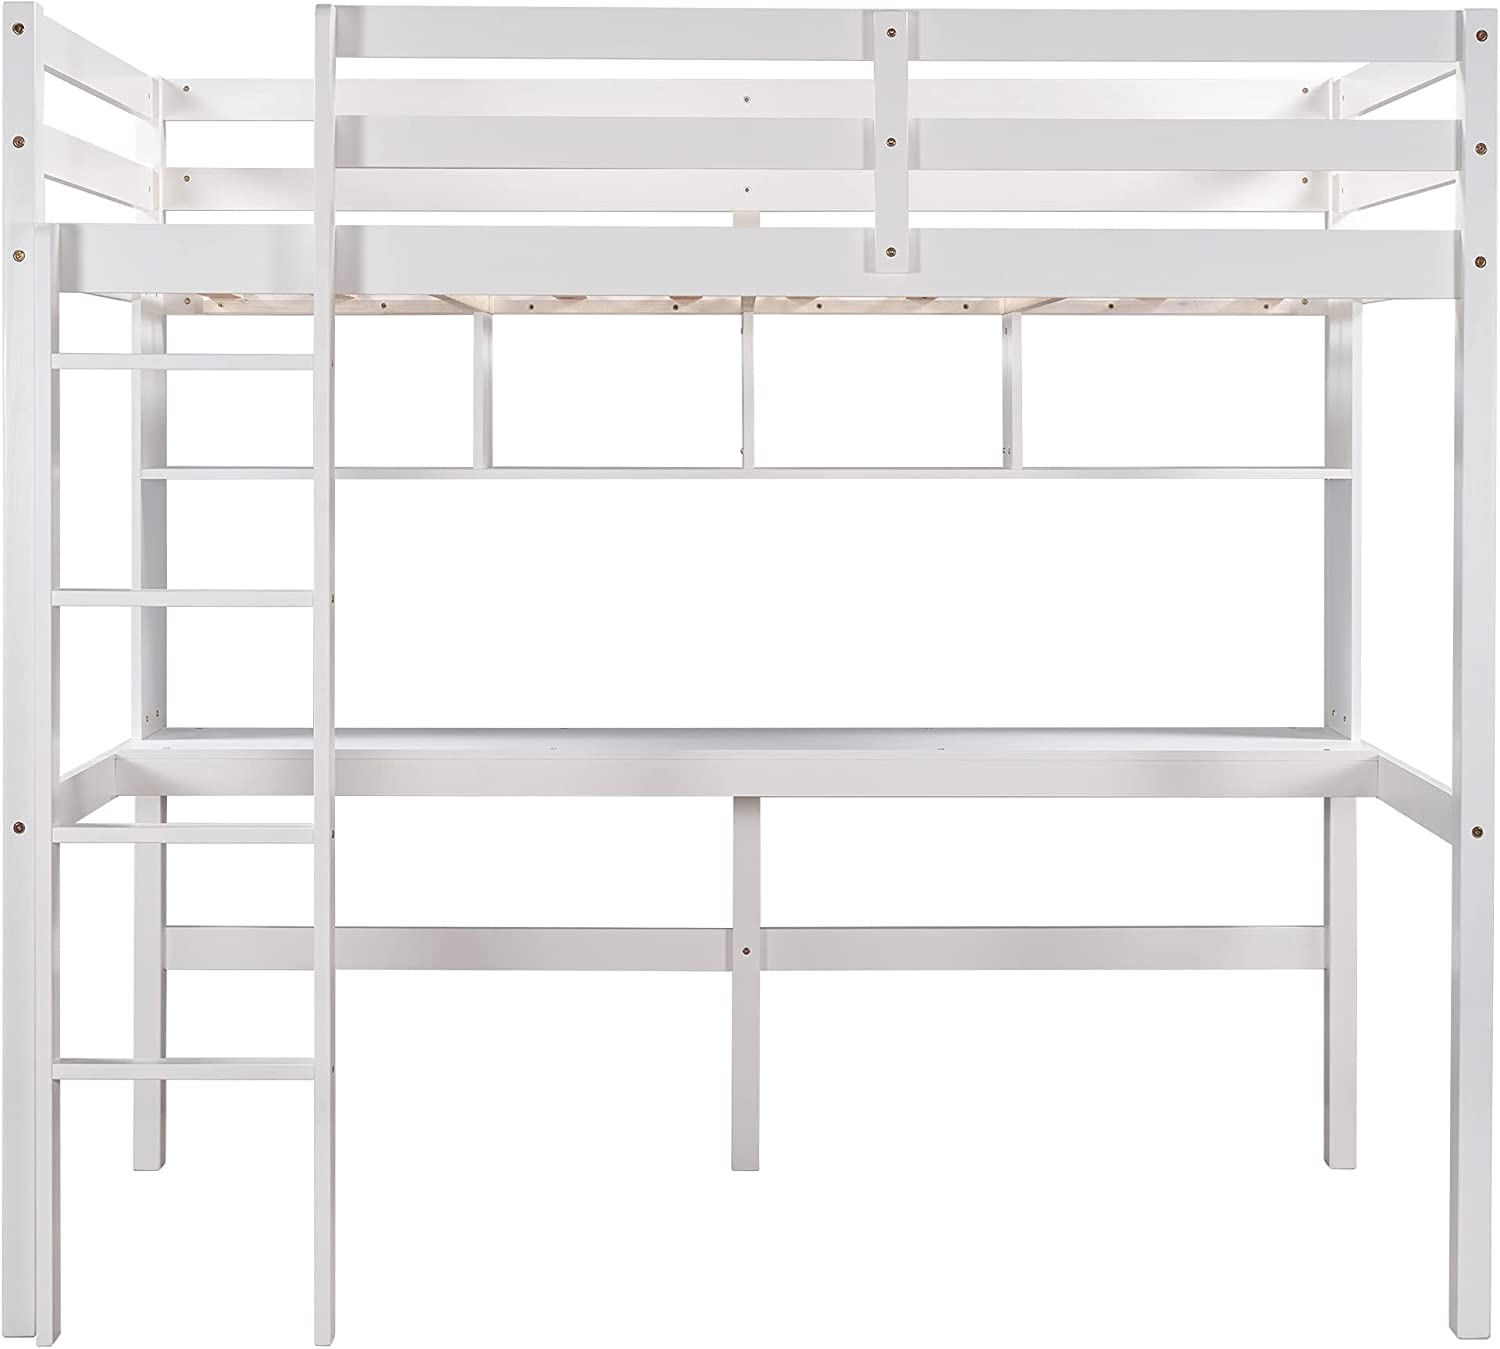 Twin Size Loft Bed with Ranking TOP20 Convenient Dealing full price reduction Desk Ladder Shelves Wh and